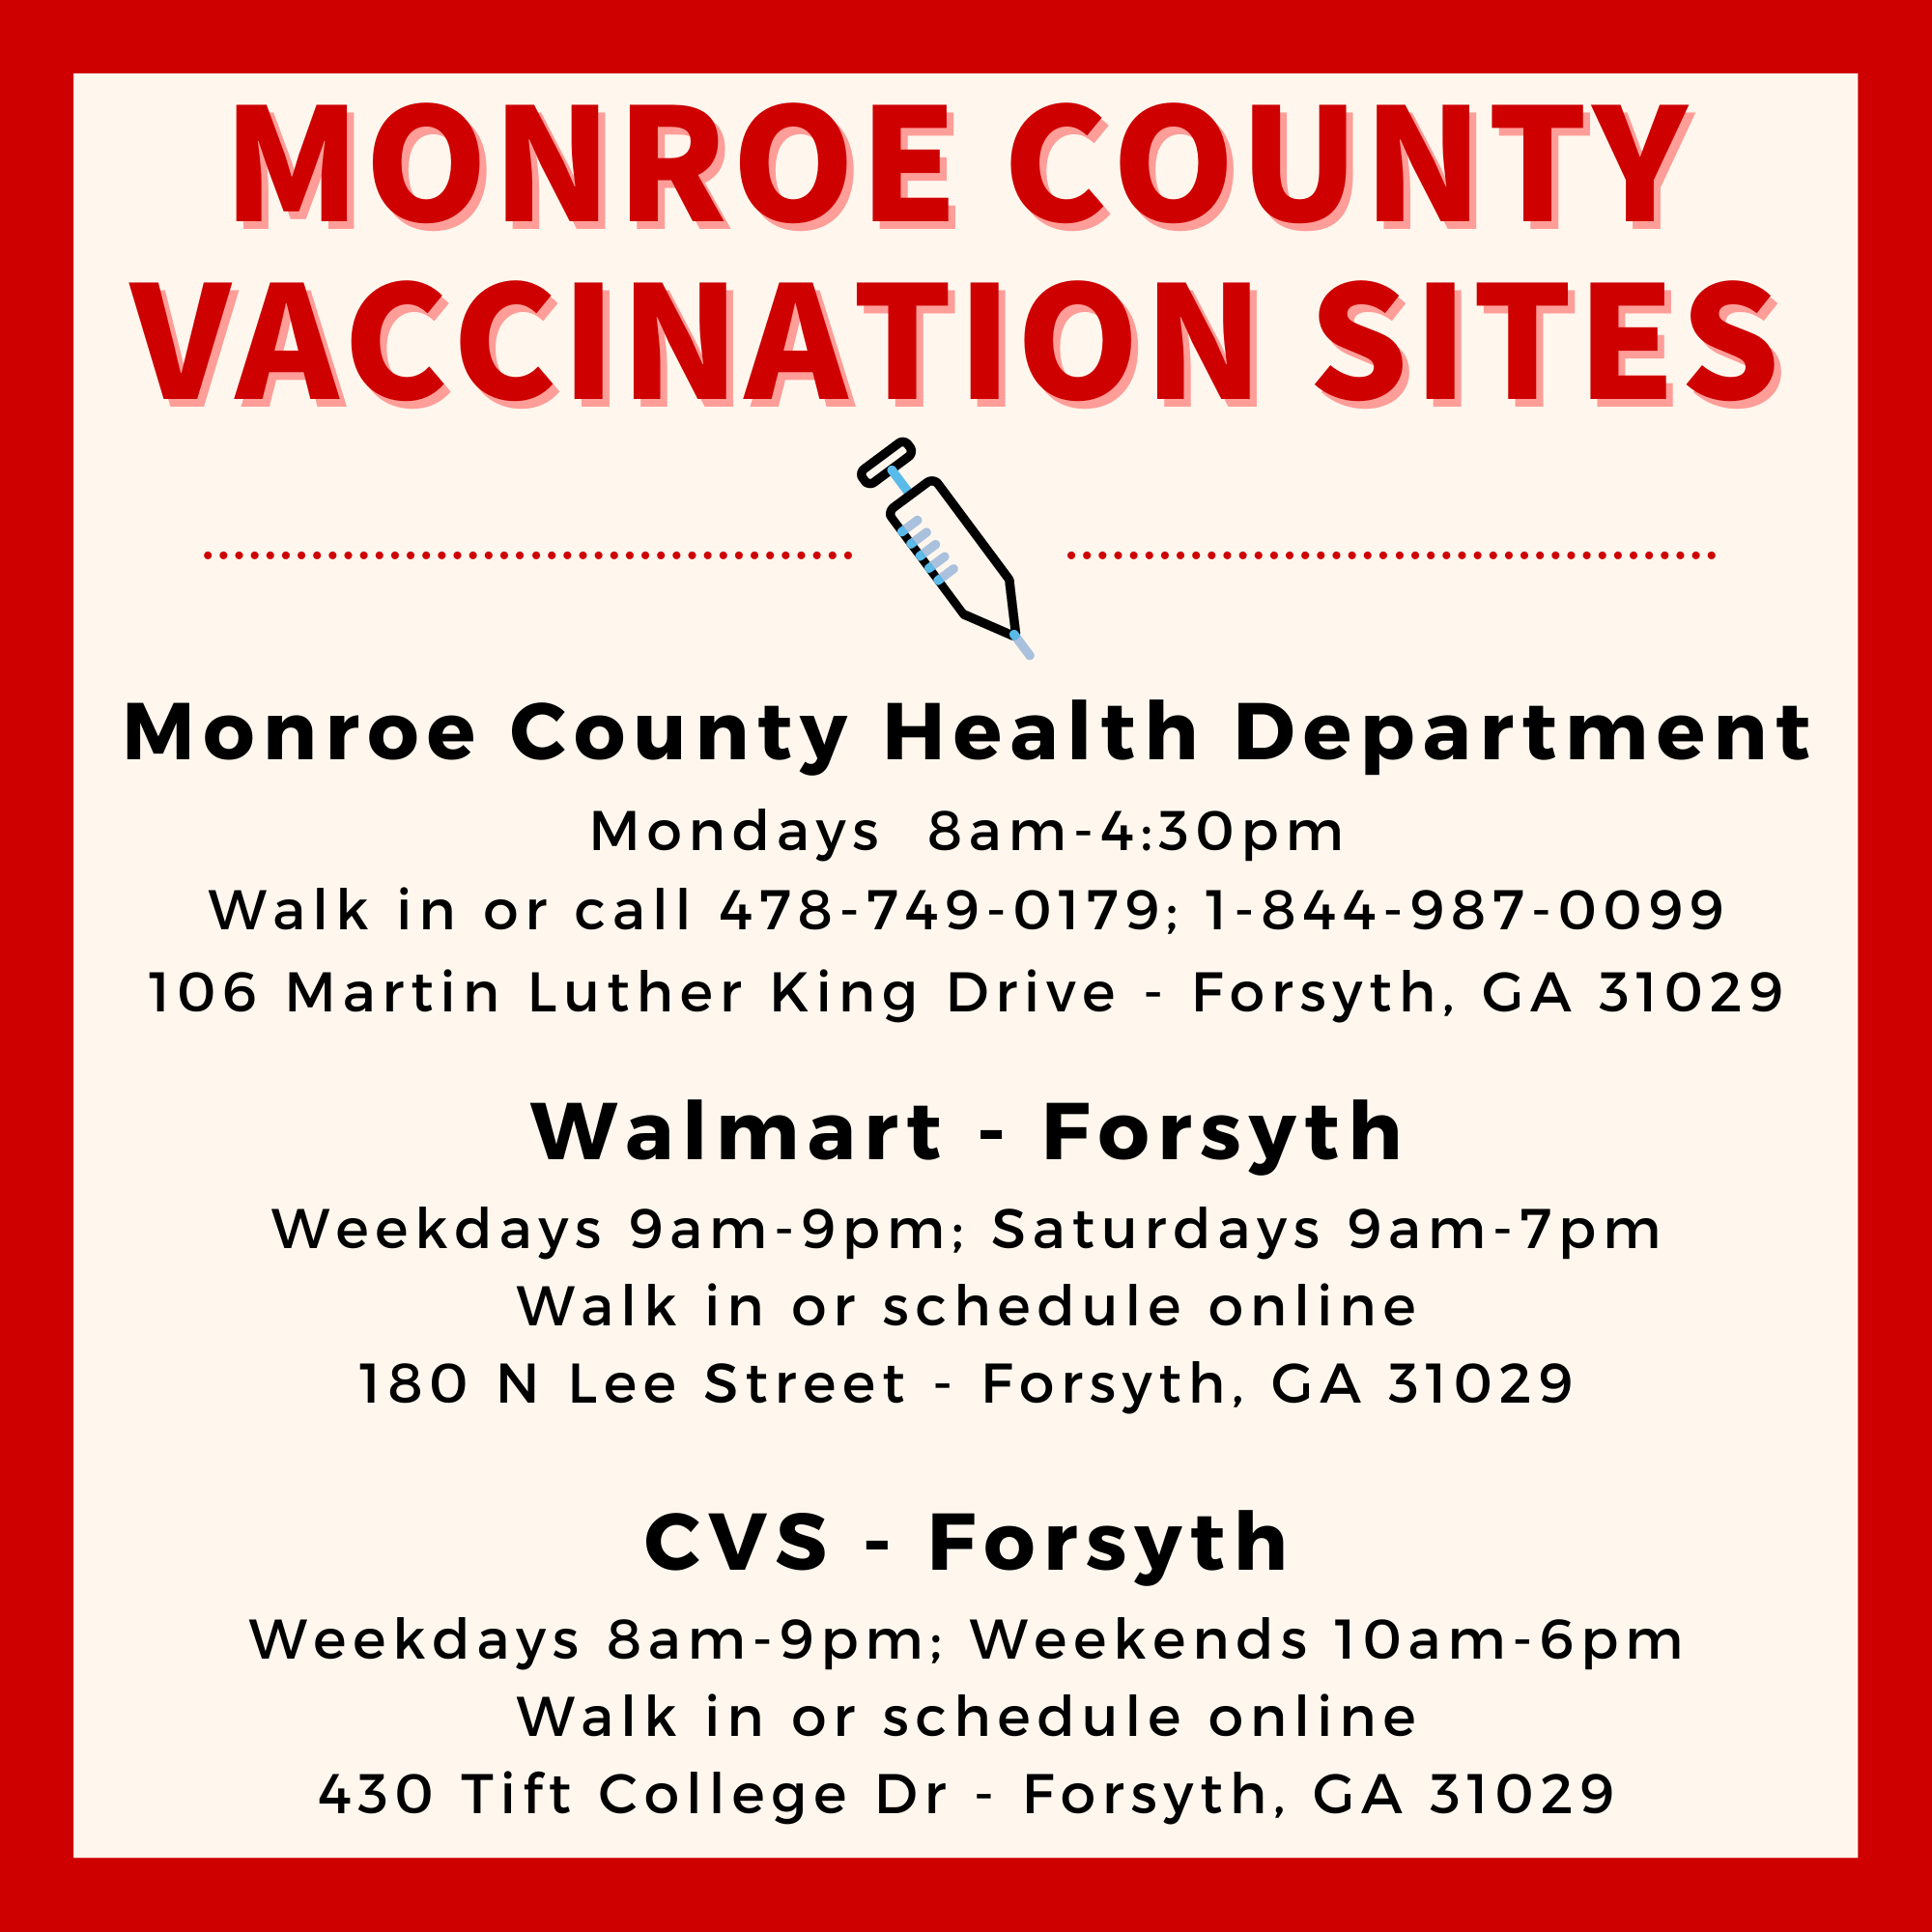 Monroe County Vaccination Sites